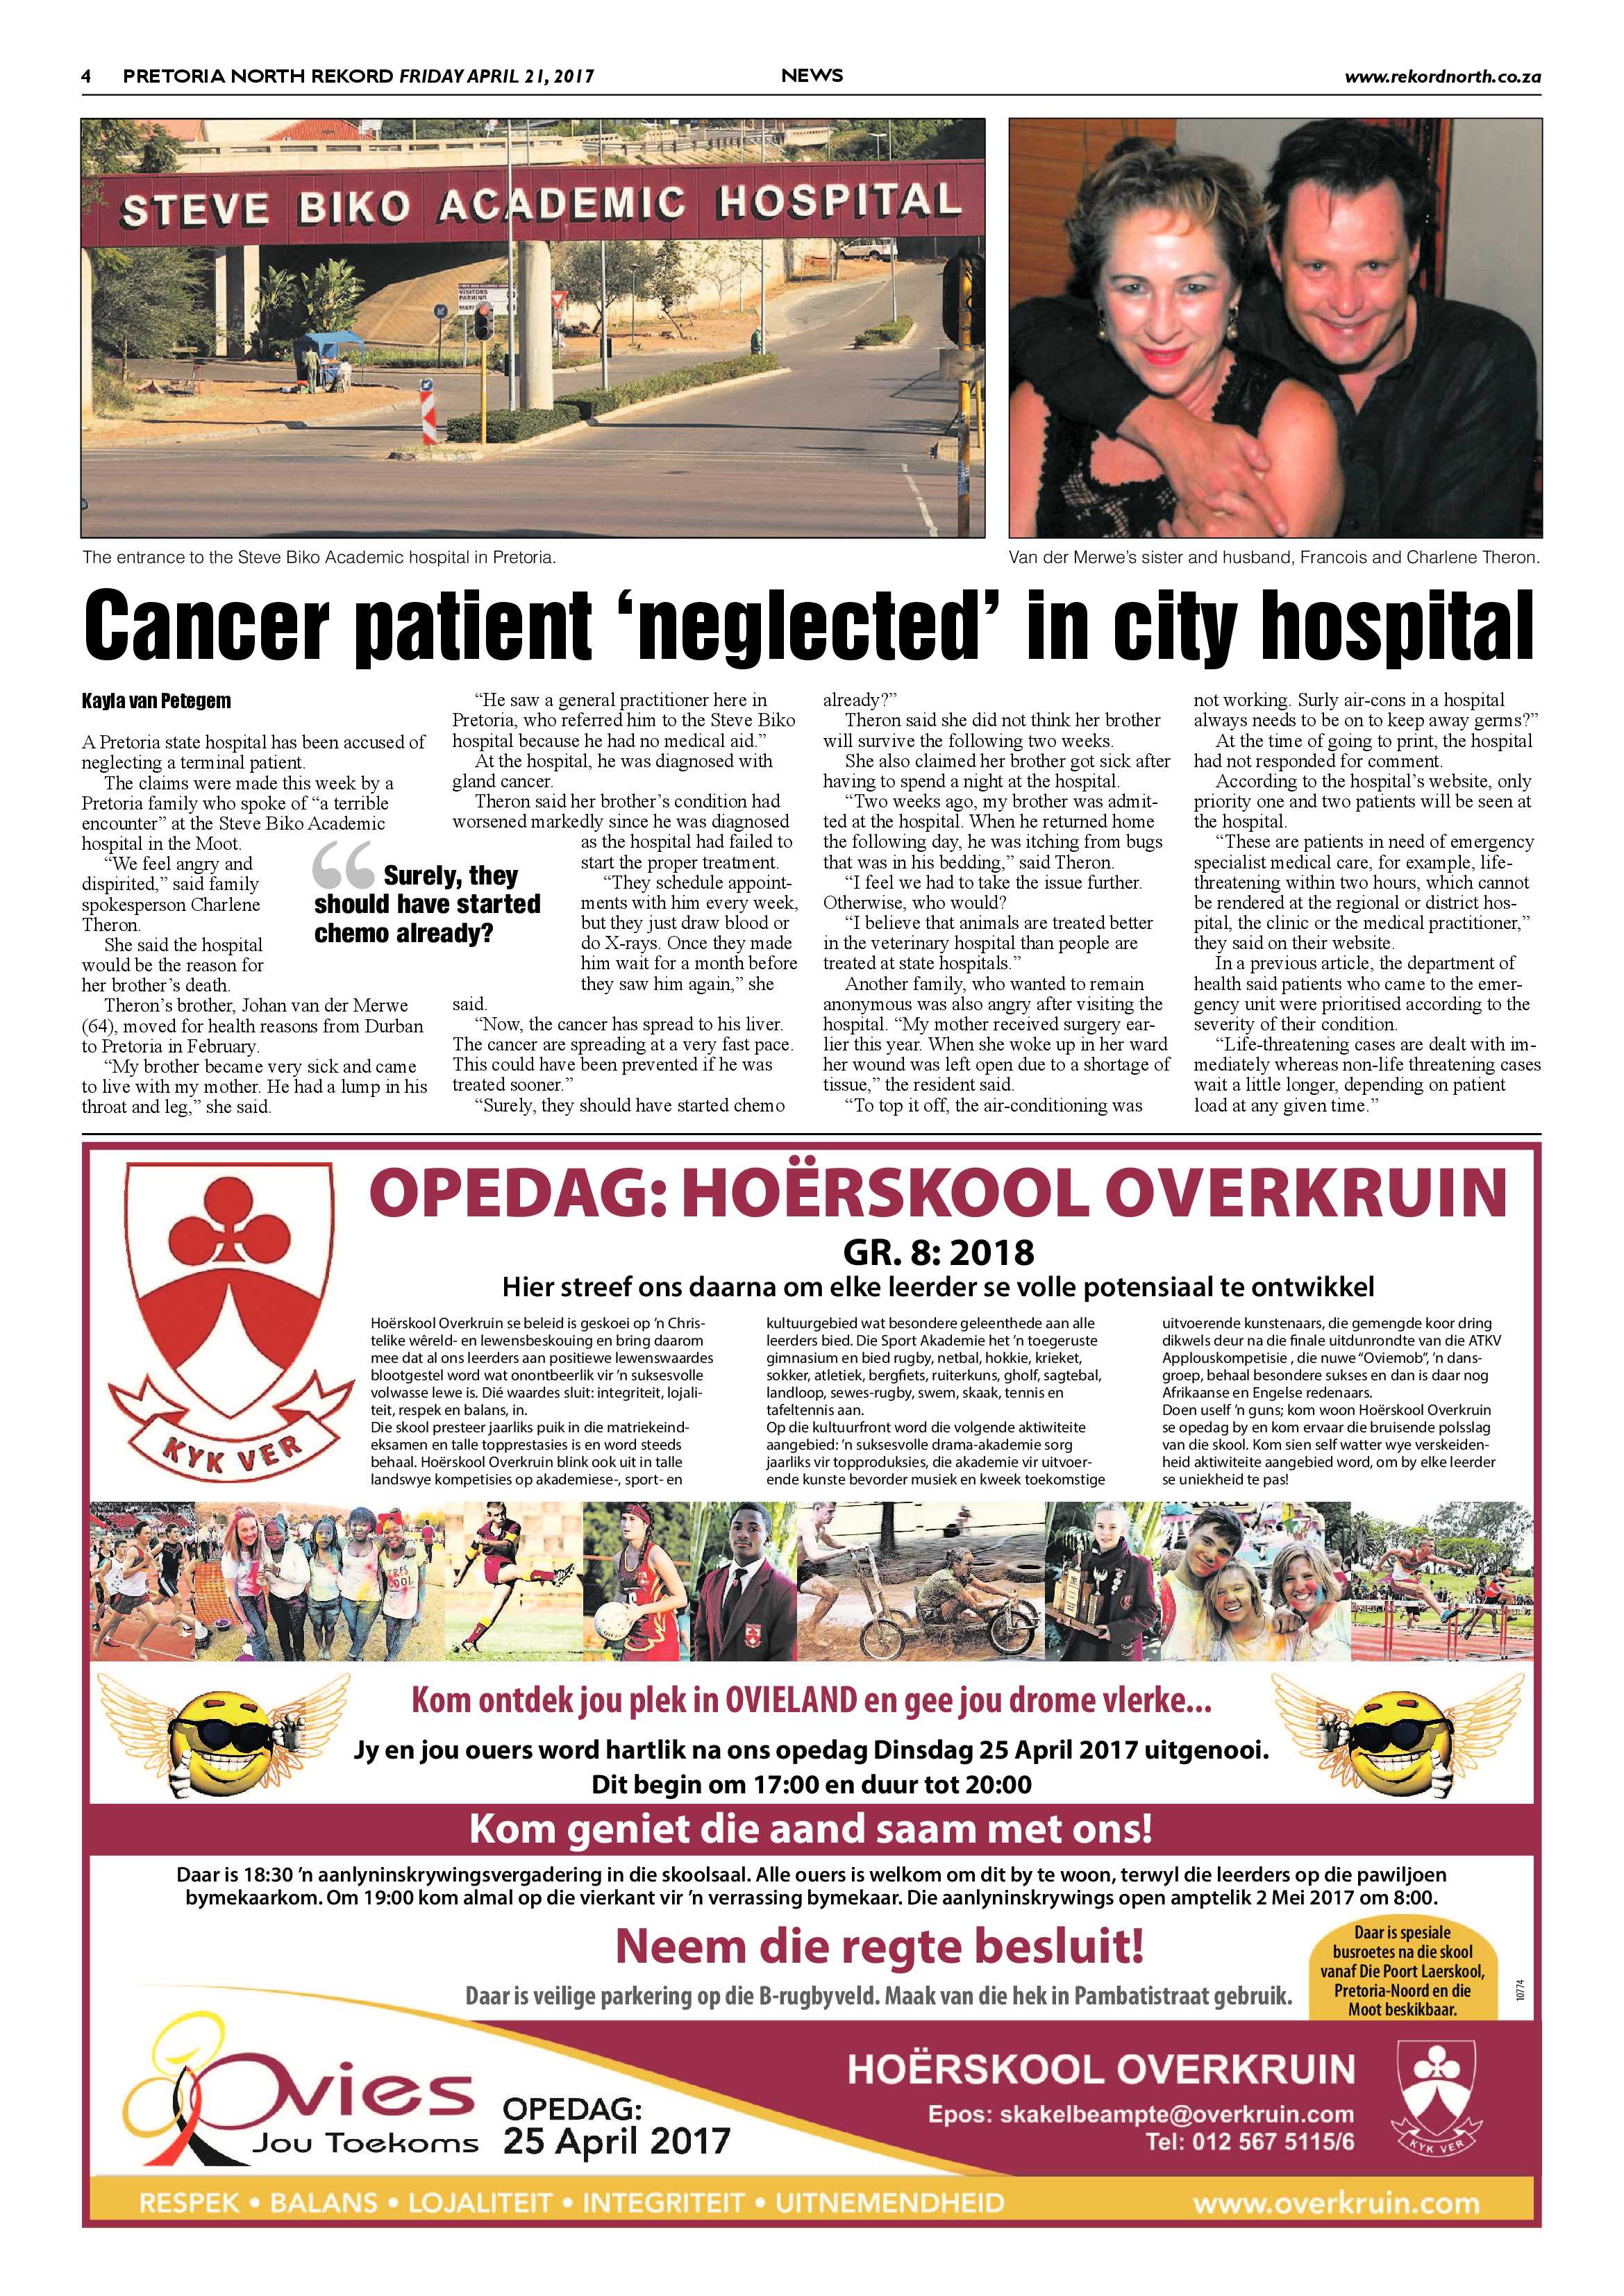 rekord-north-21-april-2017-epapers-page-4